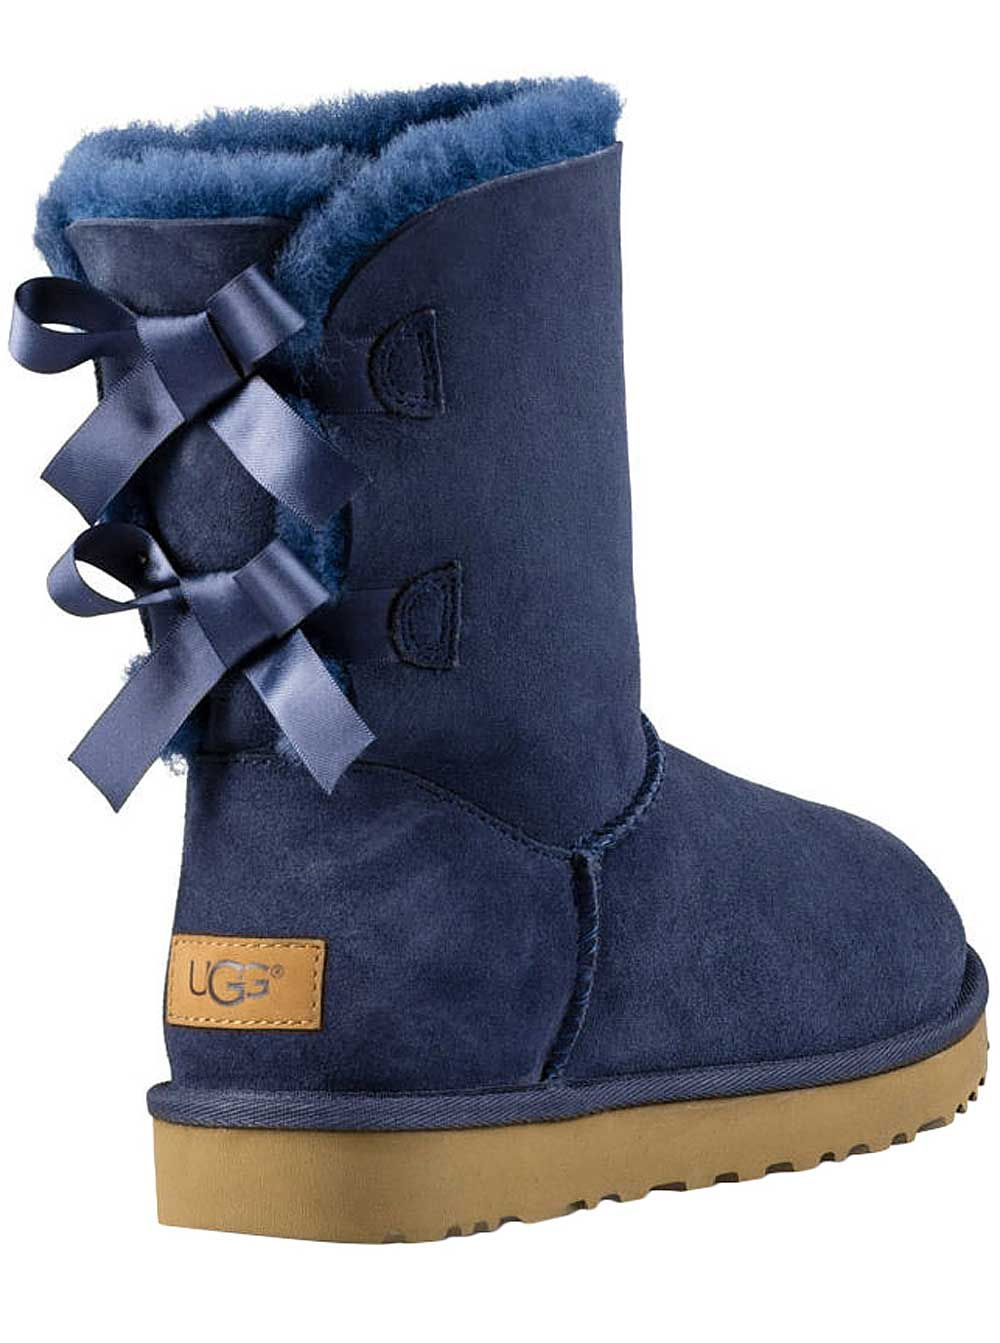 68785aa4da5 UGG Boots | Slippers | Shavertown, PA